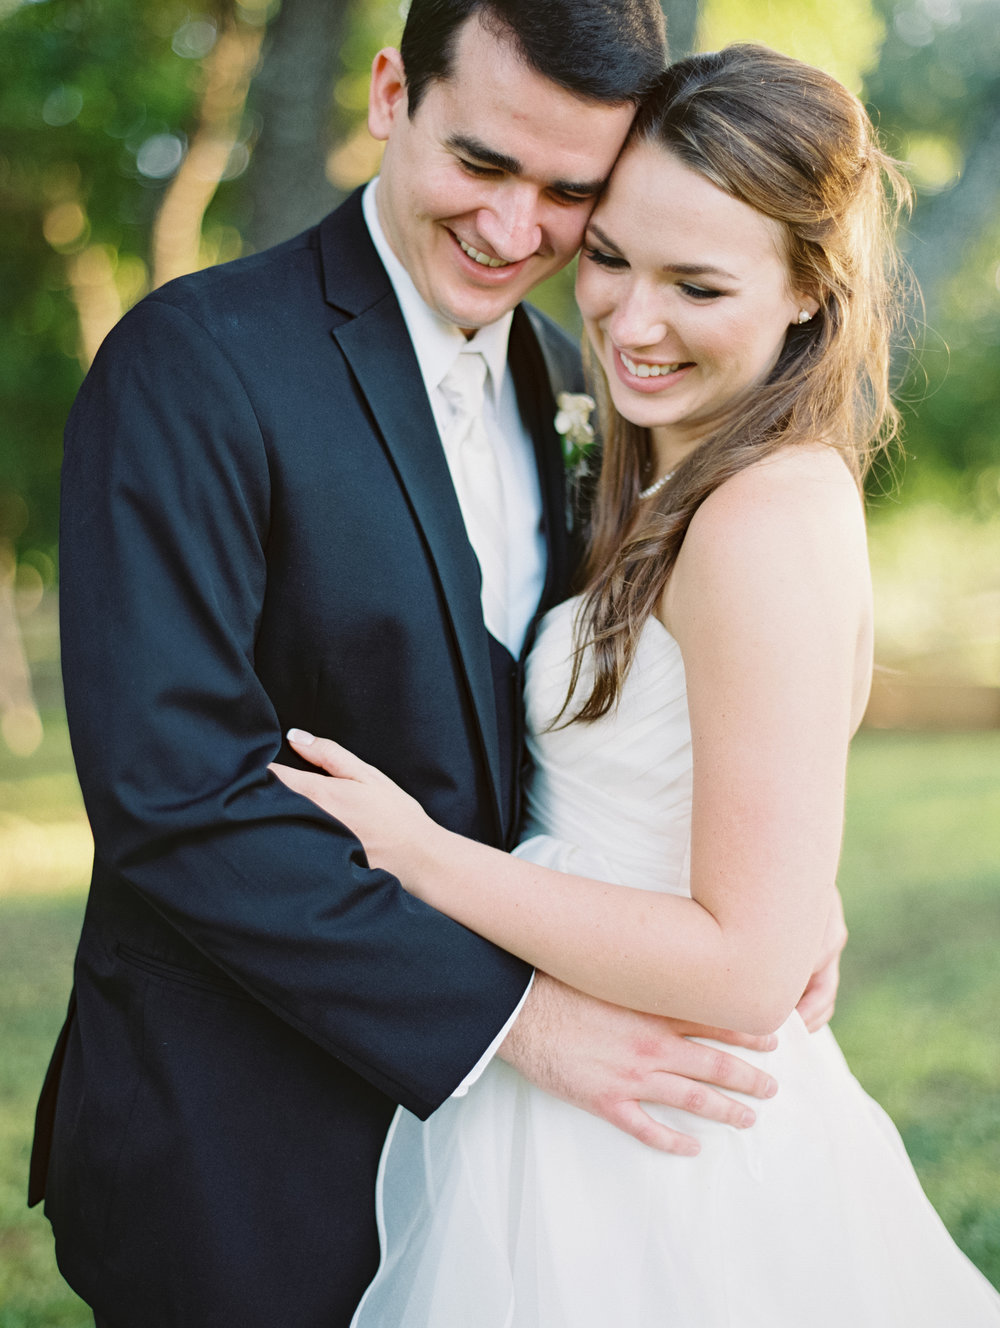 - Alix & Brent - Our experience with Becca was second to none.  From the very first e-mail I sent inquiring about package options, Becca was kind, professional and extremely responsive. She took the time to invest in my husband and me. I, unlike some brides, did not have every detail of the wedding planned out perfectly. She provided irreplaceable expertise, patiently addressed every question we had, and personally guided us through every step of the planning process. Most importantly, on the day of the wedding, she was calm, focused and flexible.  I cannot express enough how helpful this is when, as a bride, you are experiencing every emotion imaginable. She delivered to us photos of the highest quality that we will cherish for the rest of our lives. We strongly recommend using Becca Lea for your engagements, bridals, and wedding day photography. You will not be disappointed.